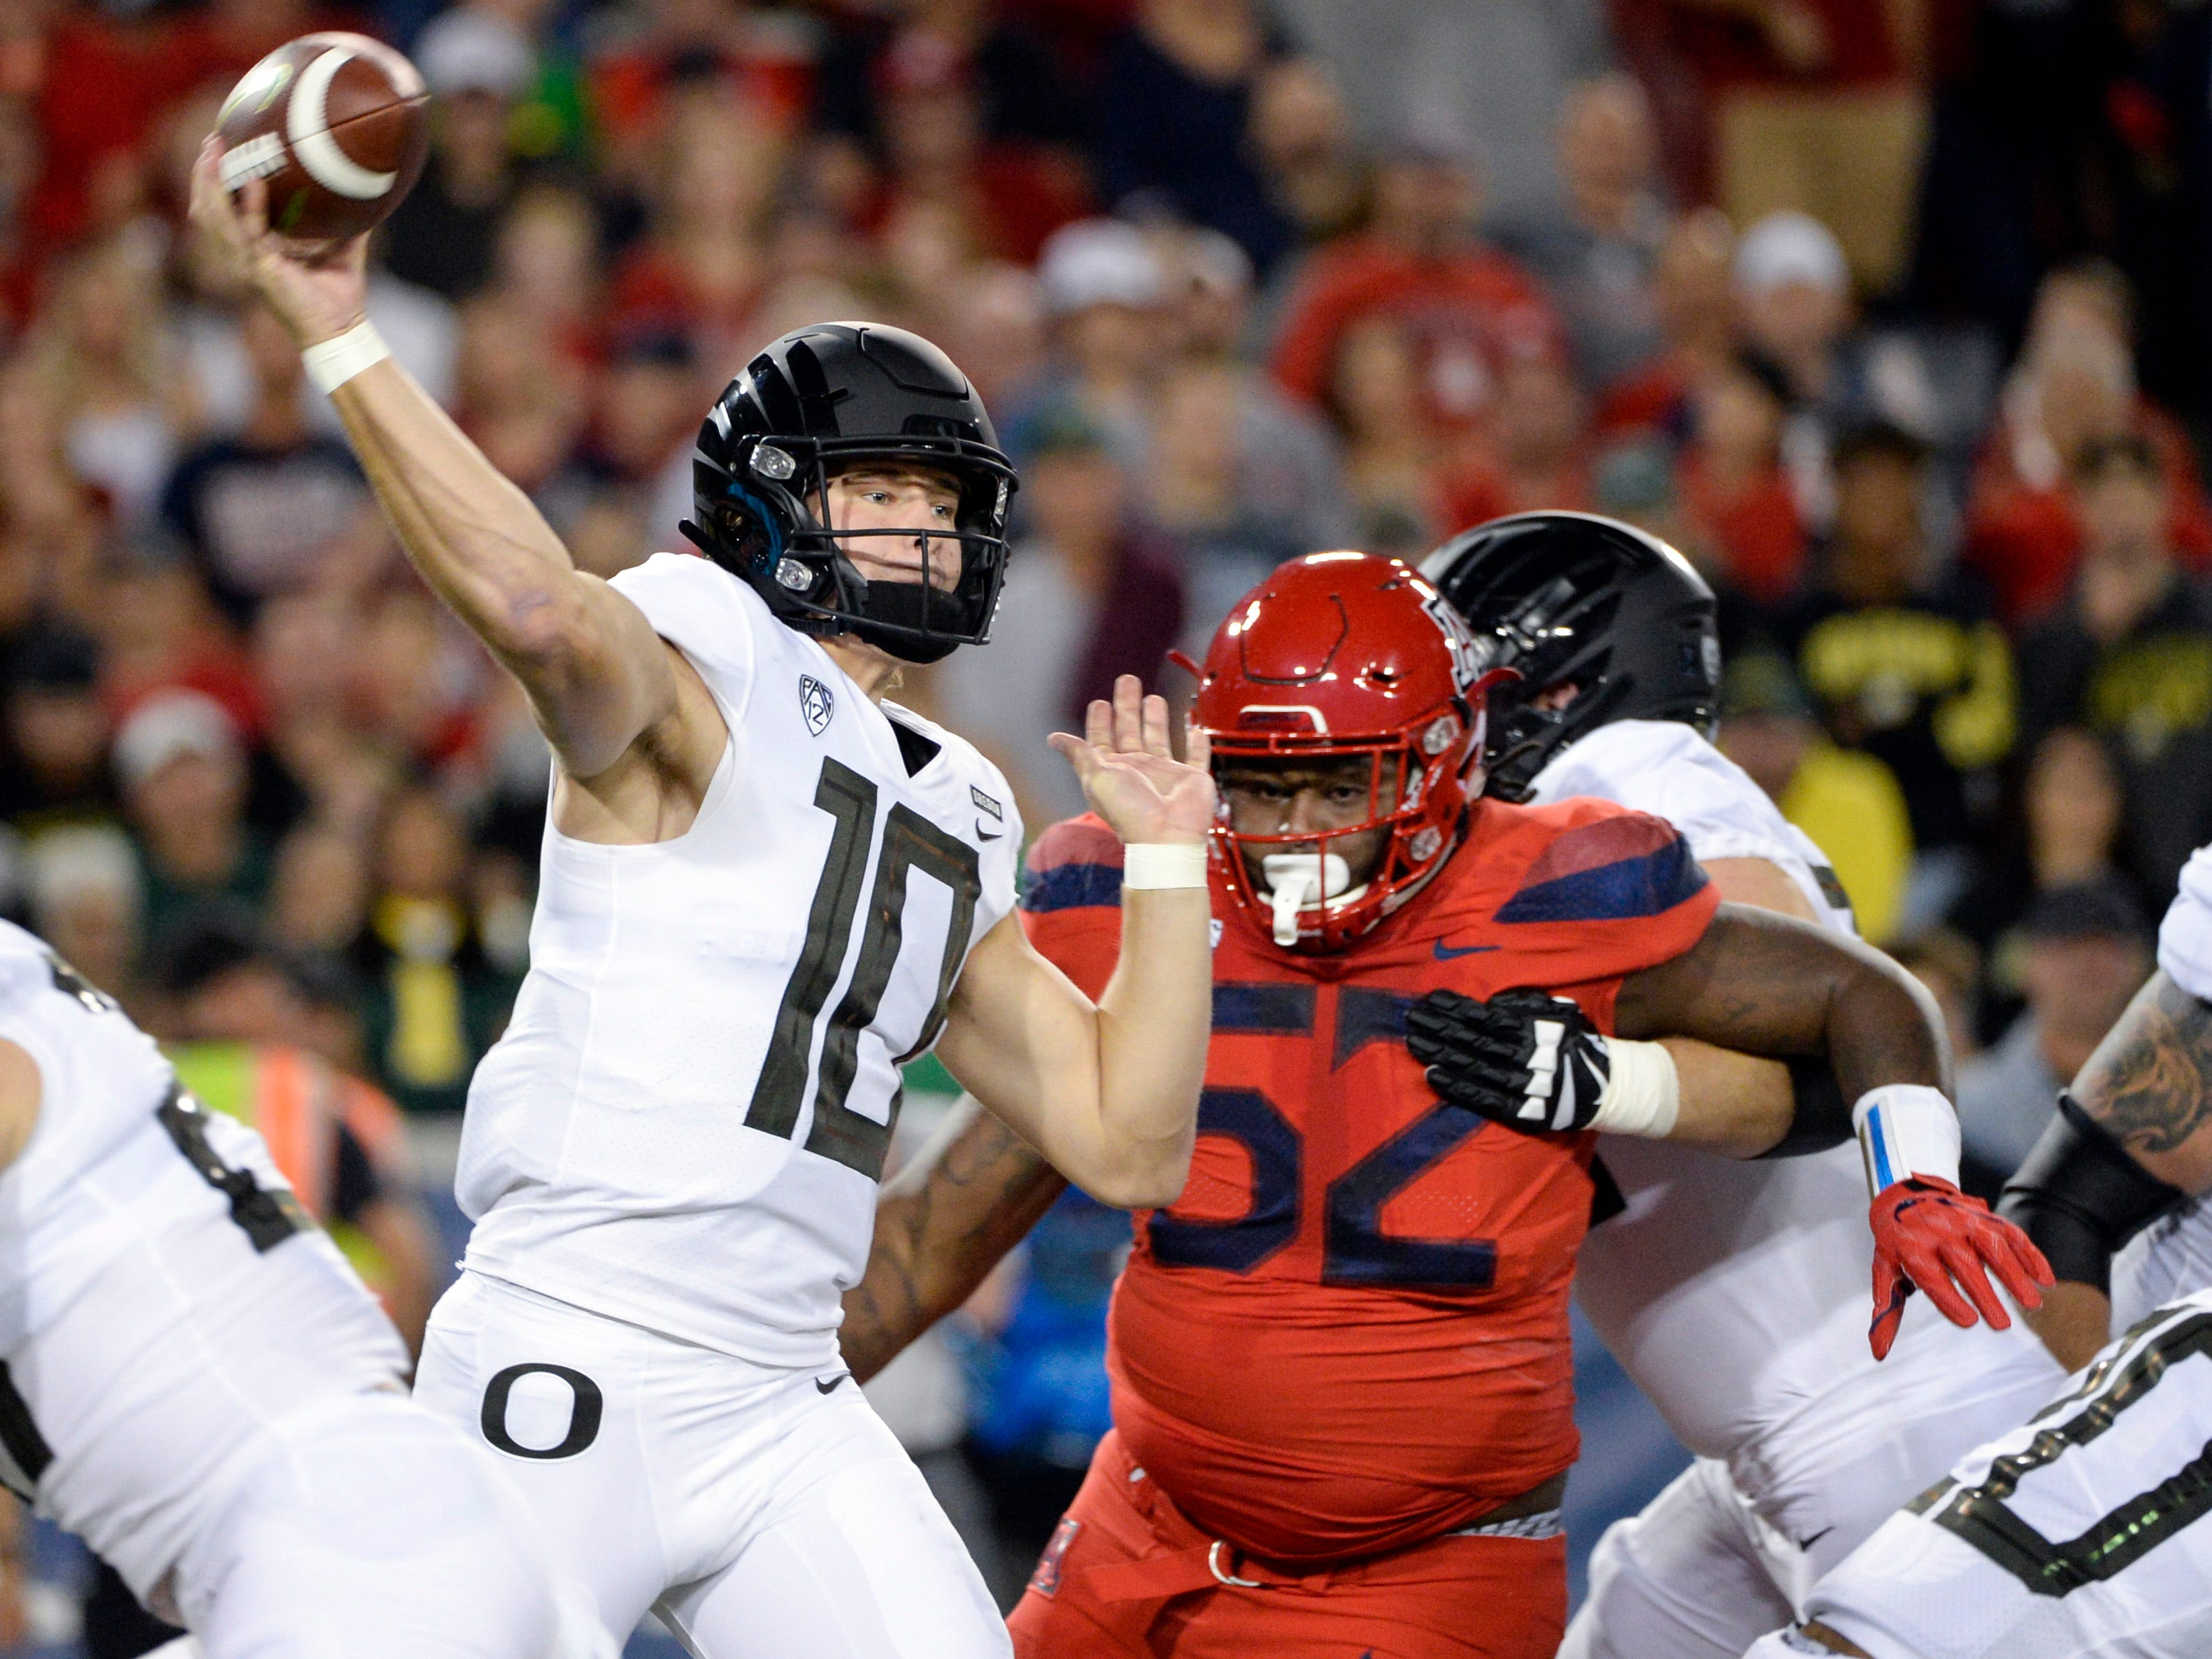 Oct 27, 2018; Tucson, AZ, USA; Oregon Ducks quarterback Justin Herbert (10) passes the ball under pressure from Arizona Wildcats defensive tackle PJ Johnson (52) during the first half at Arizona Stadium. Mandatory Credit: Casey Sapio-USA TODAY Sports